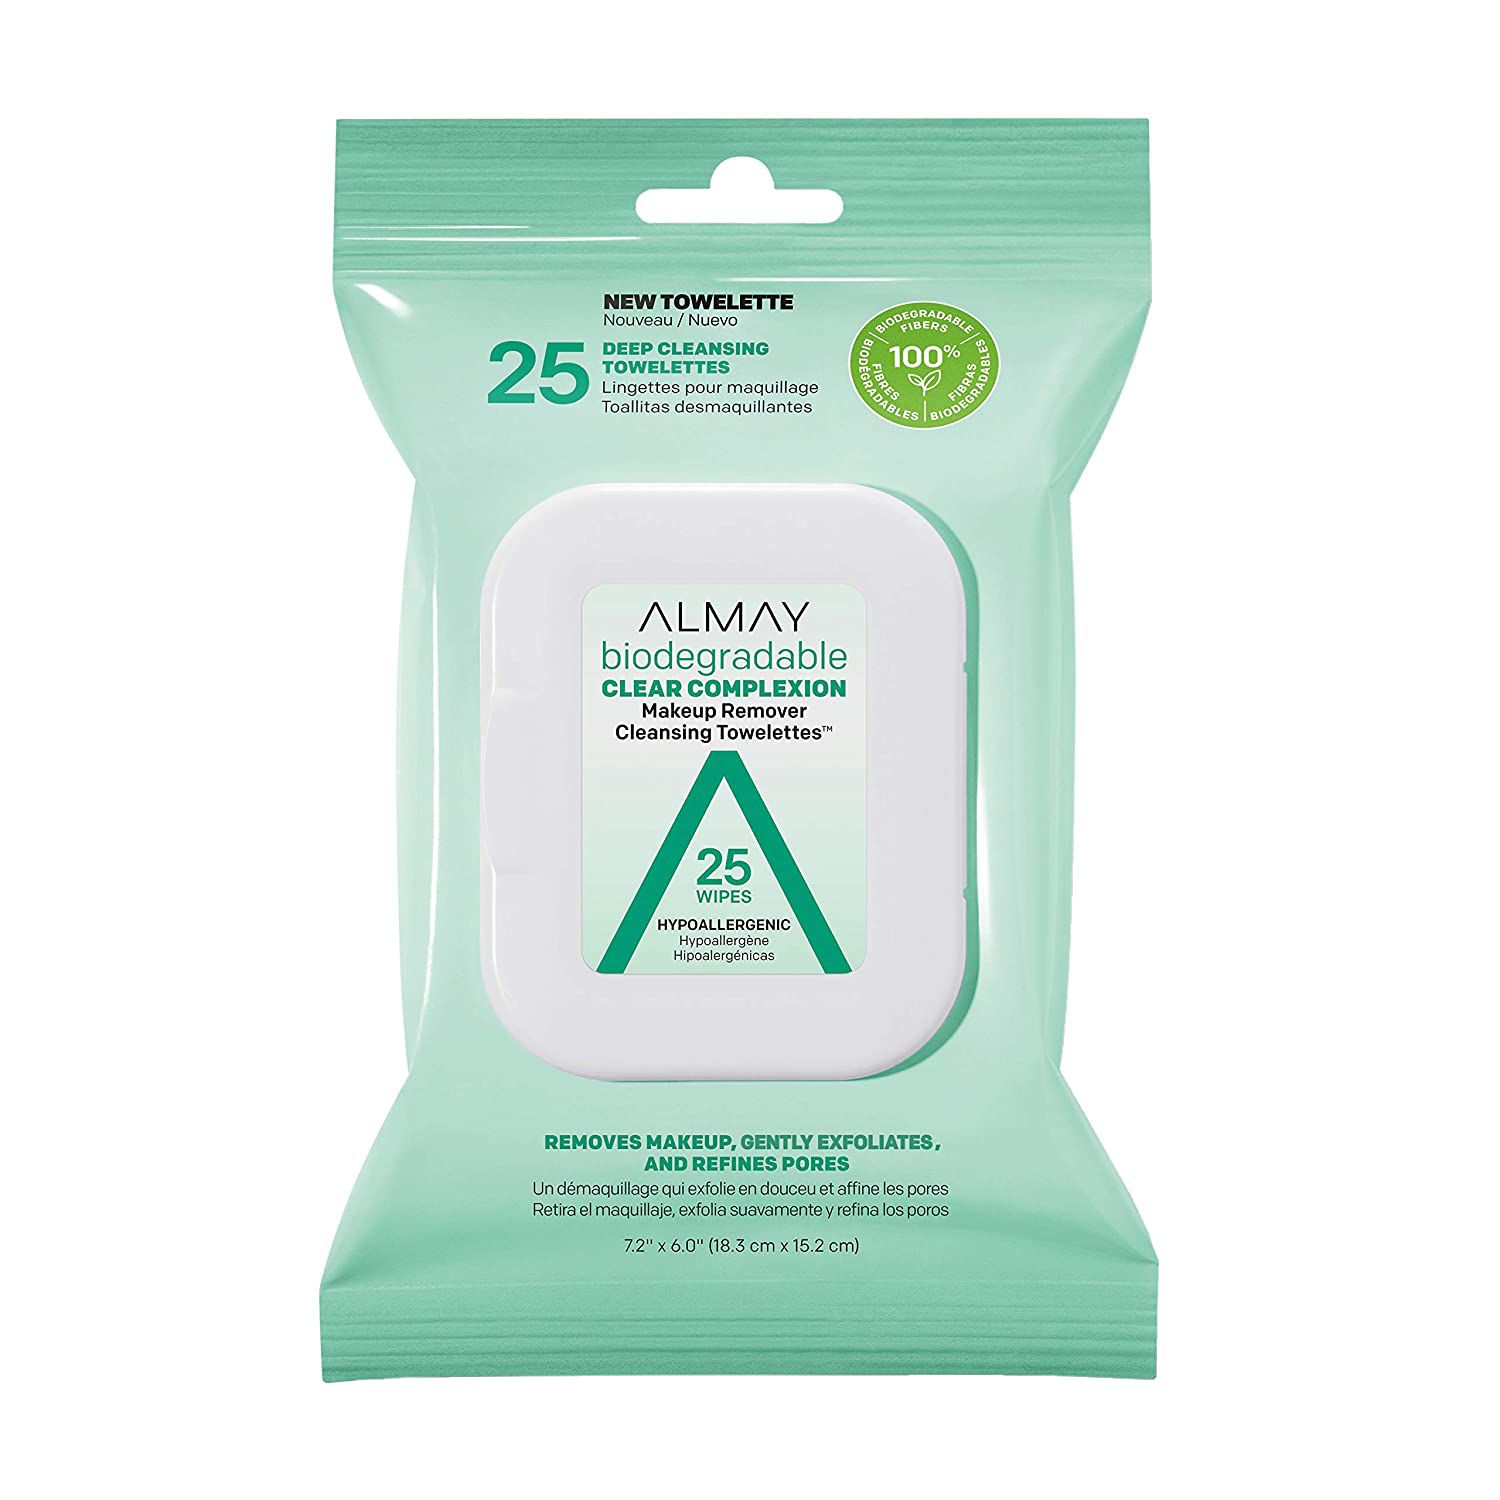 Almay Biodegradable Clear Complexion Makeup Remover Towelettes